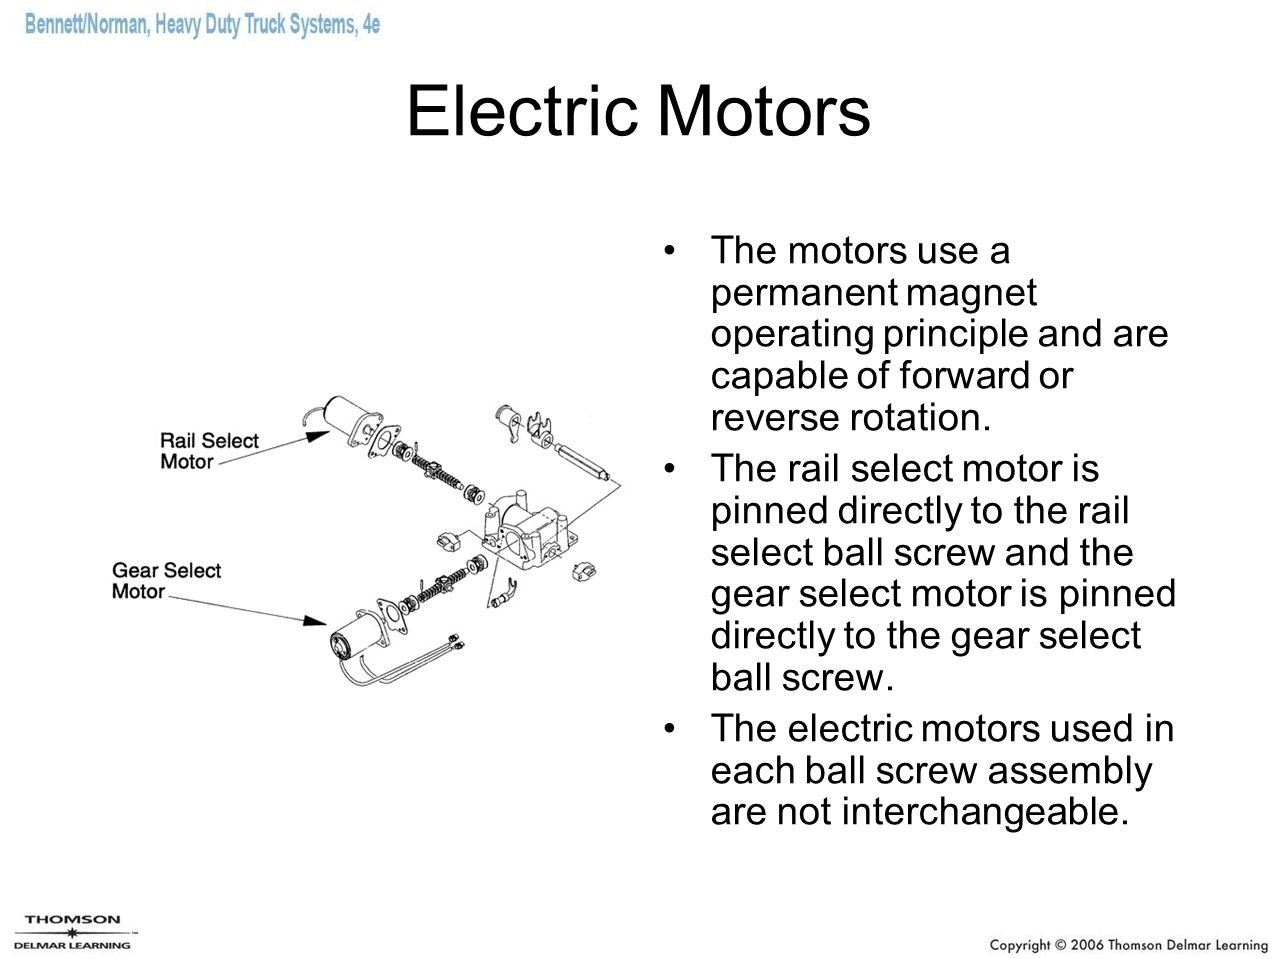 Electric Motors The motors use a permanent magnet operating principle and are capable of forward or reverse rotation.